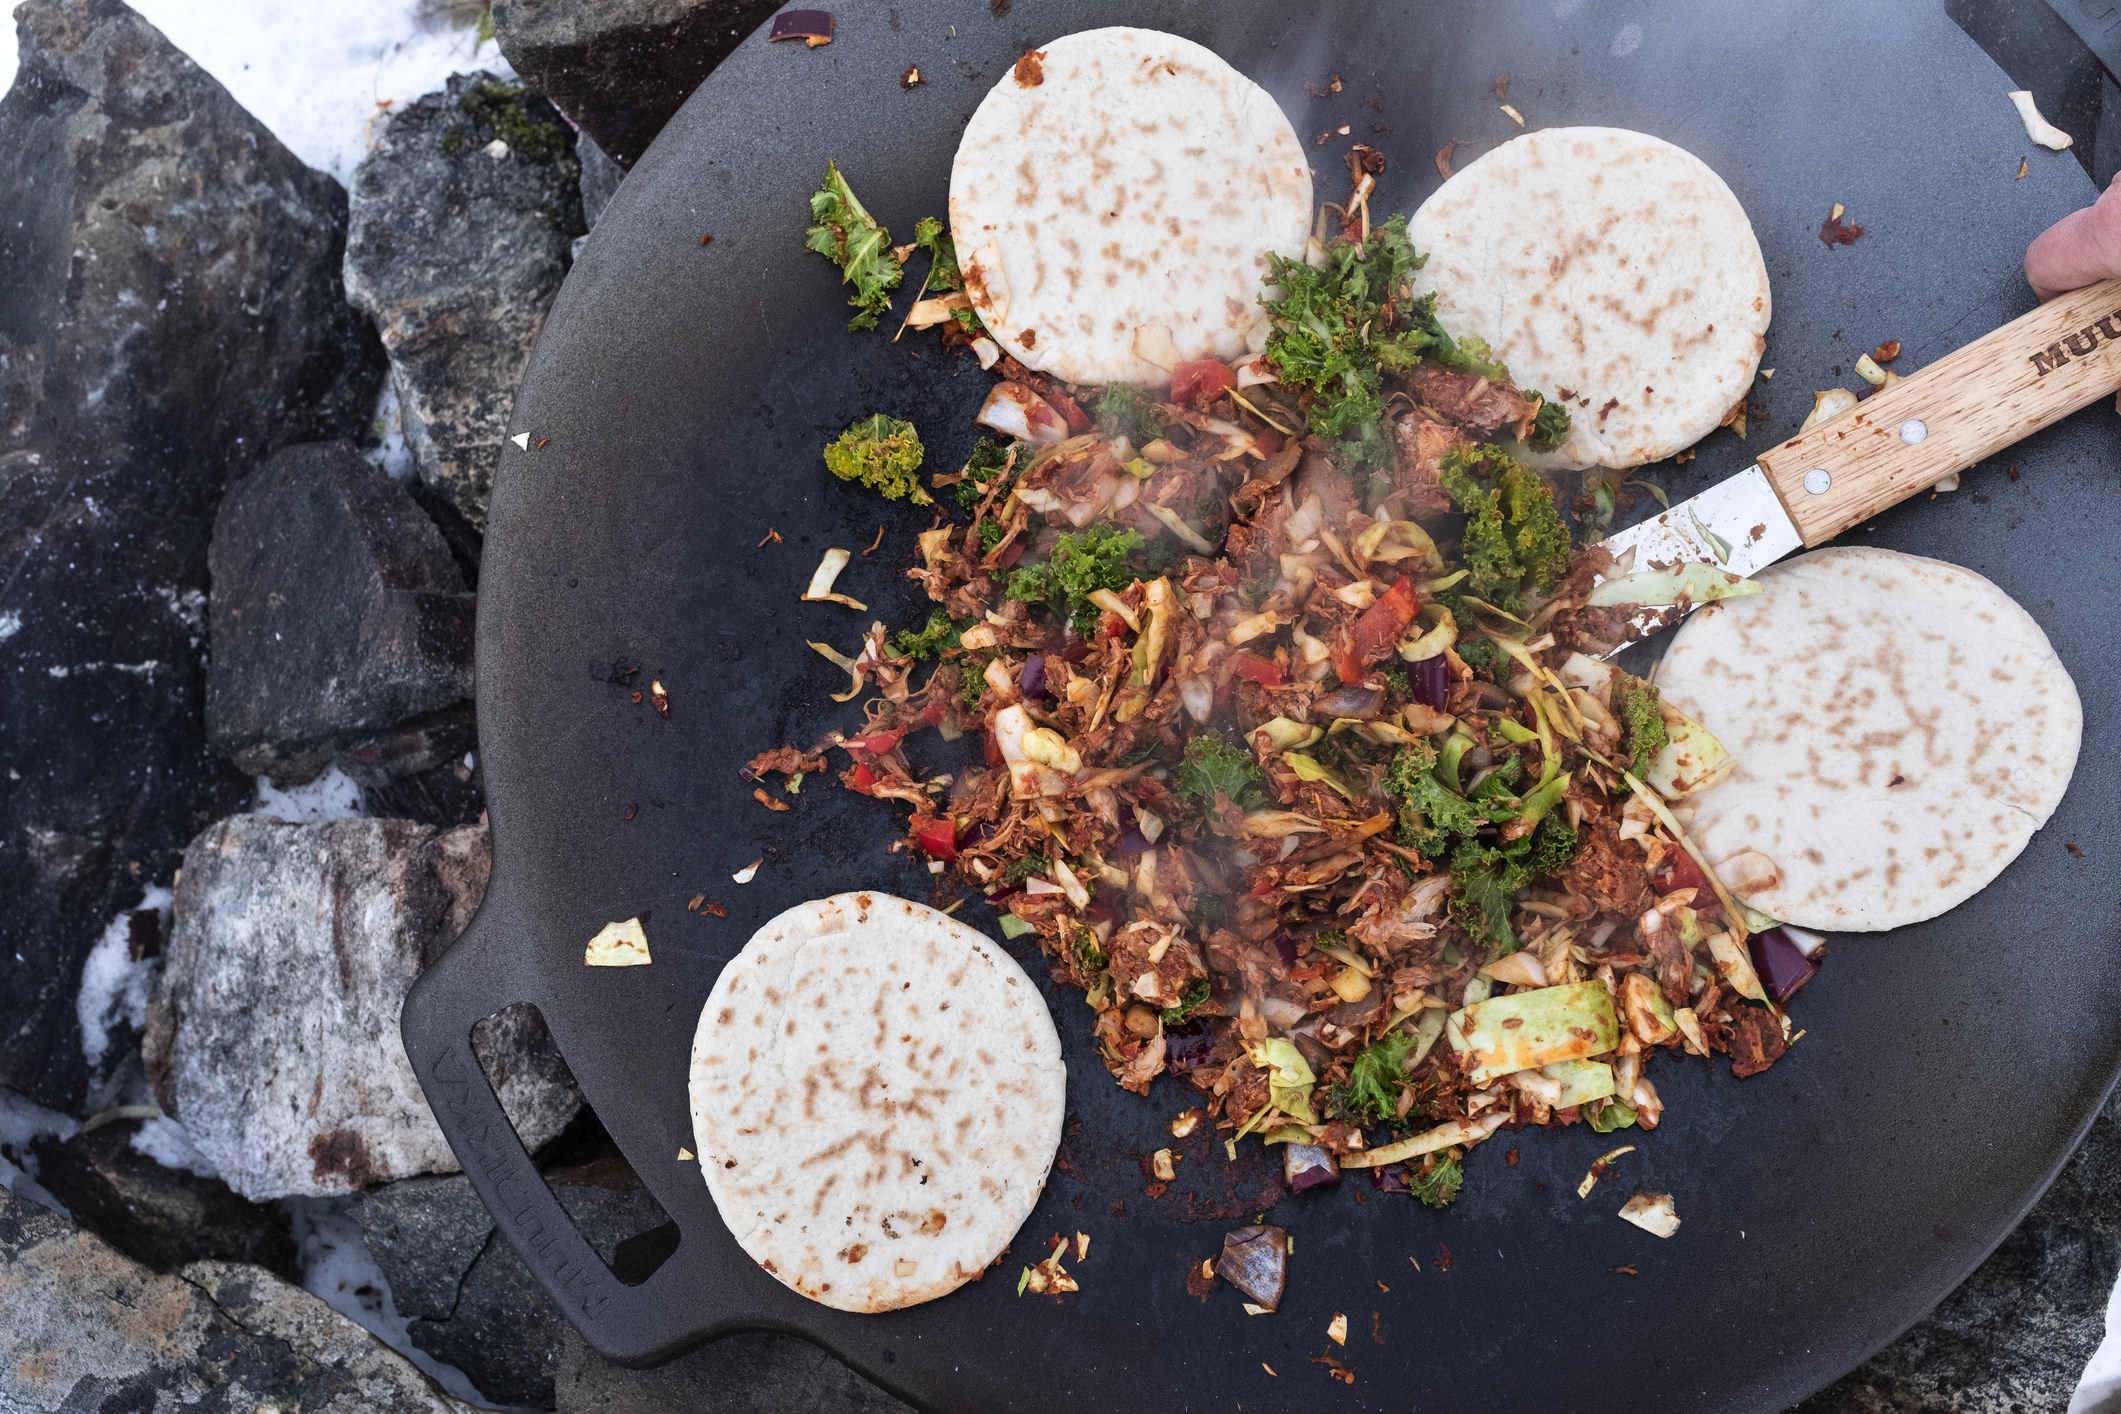 Cooking tortillas and stir fry on a grill.